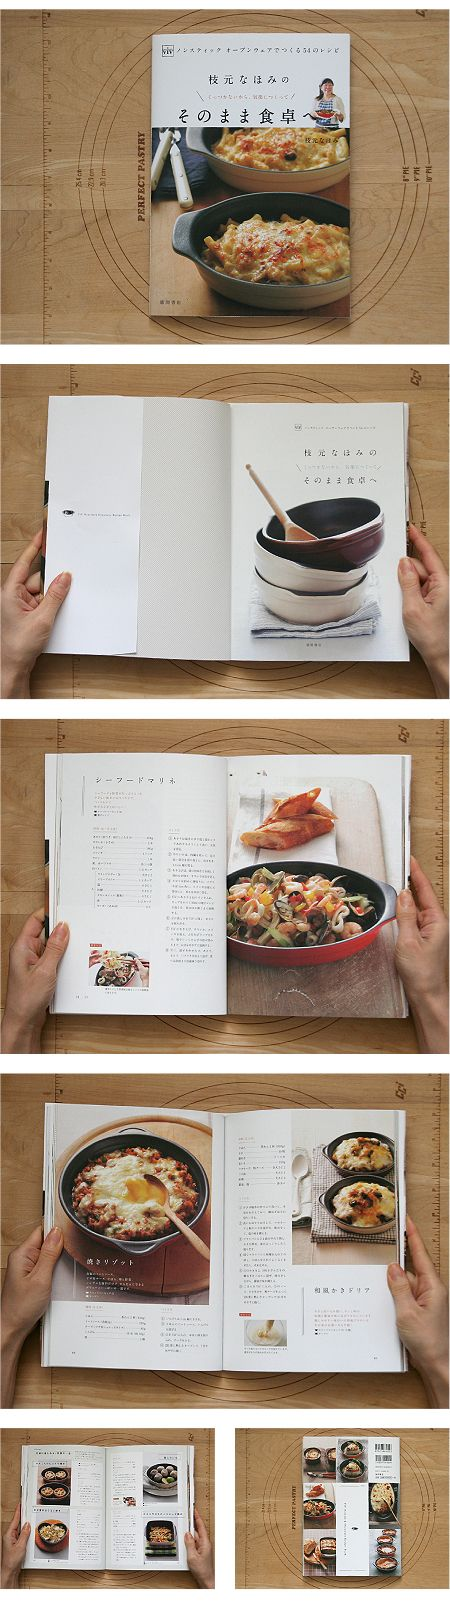 More of a classic cook book layout but like how the images are always in the same place. An alternative layout to consider to help break the pace up.